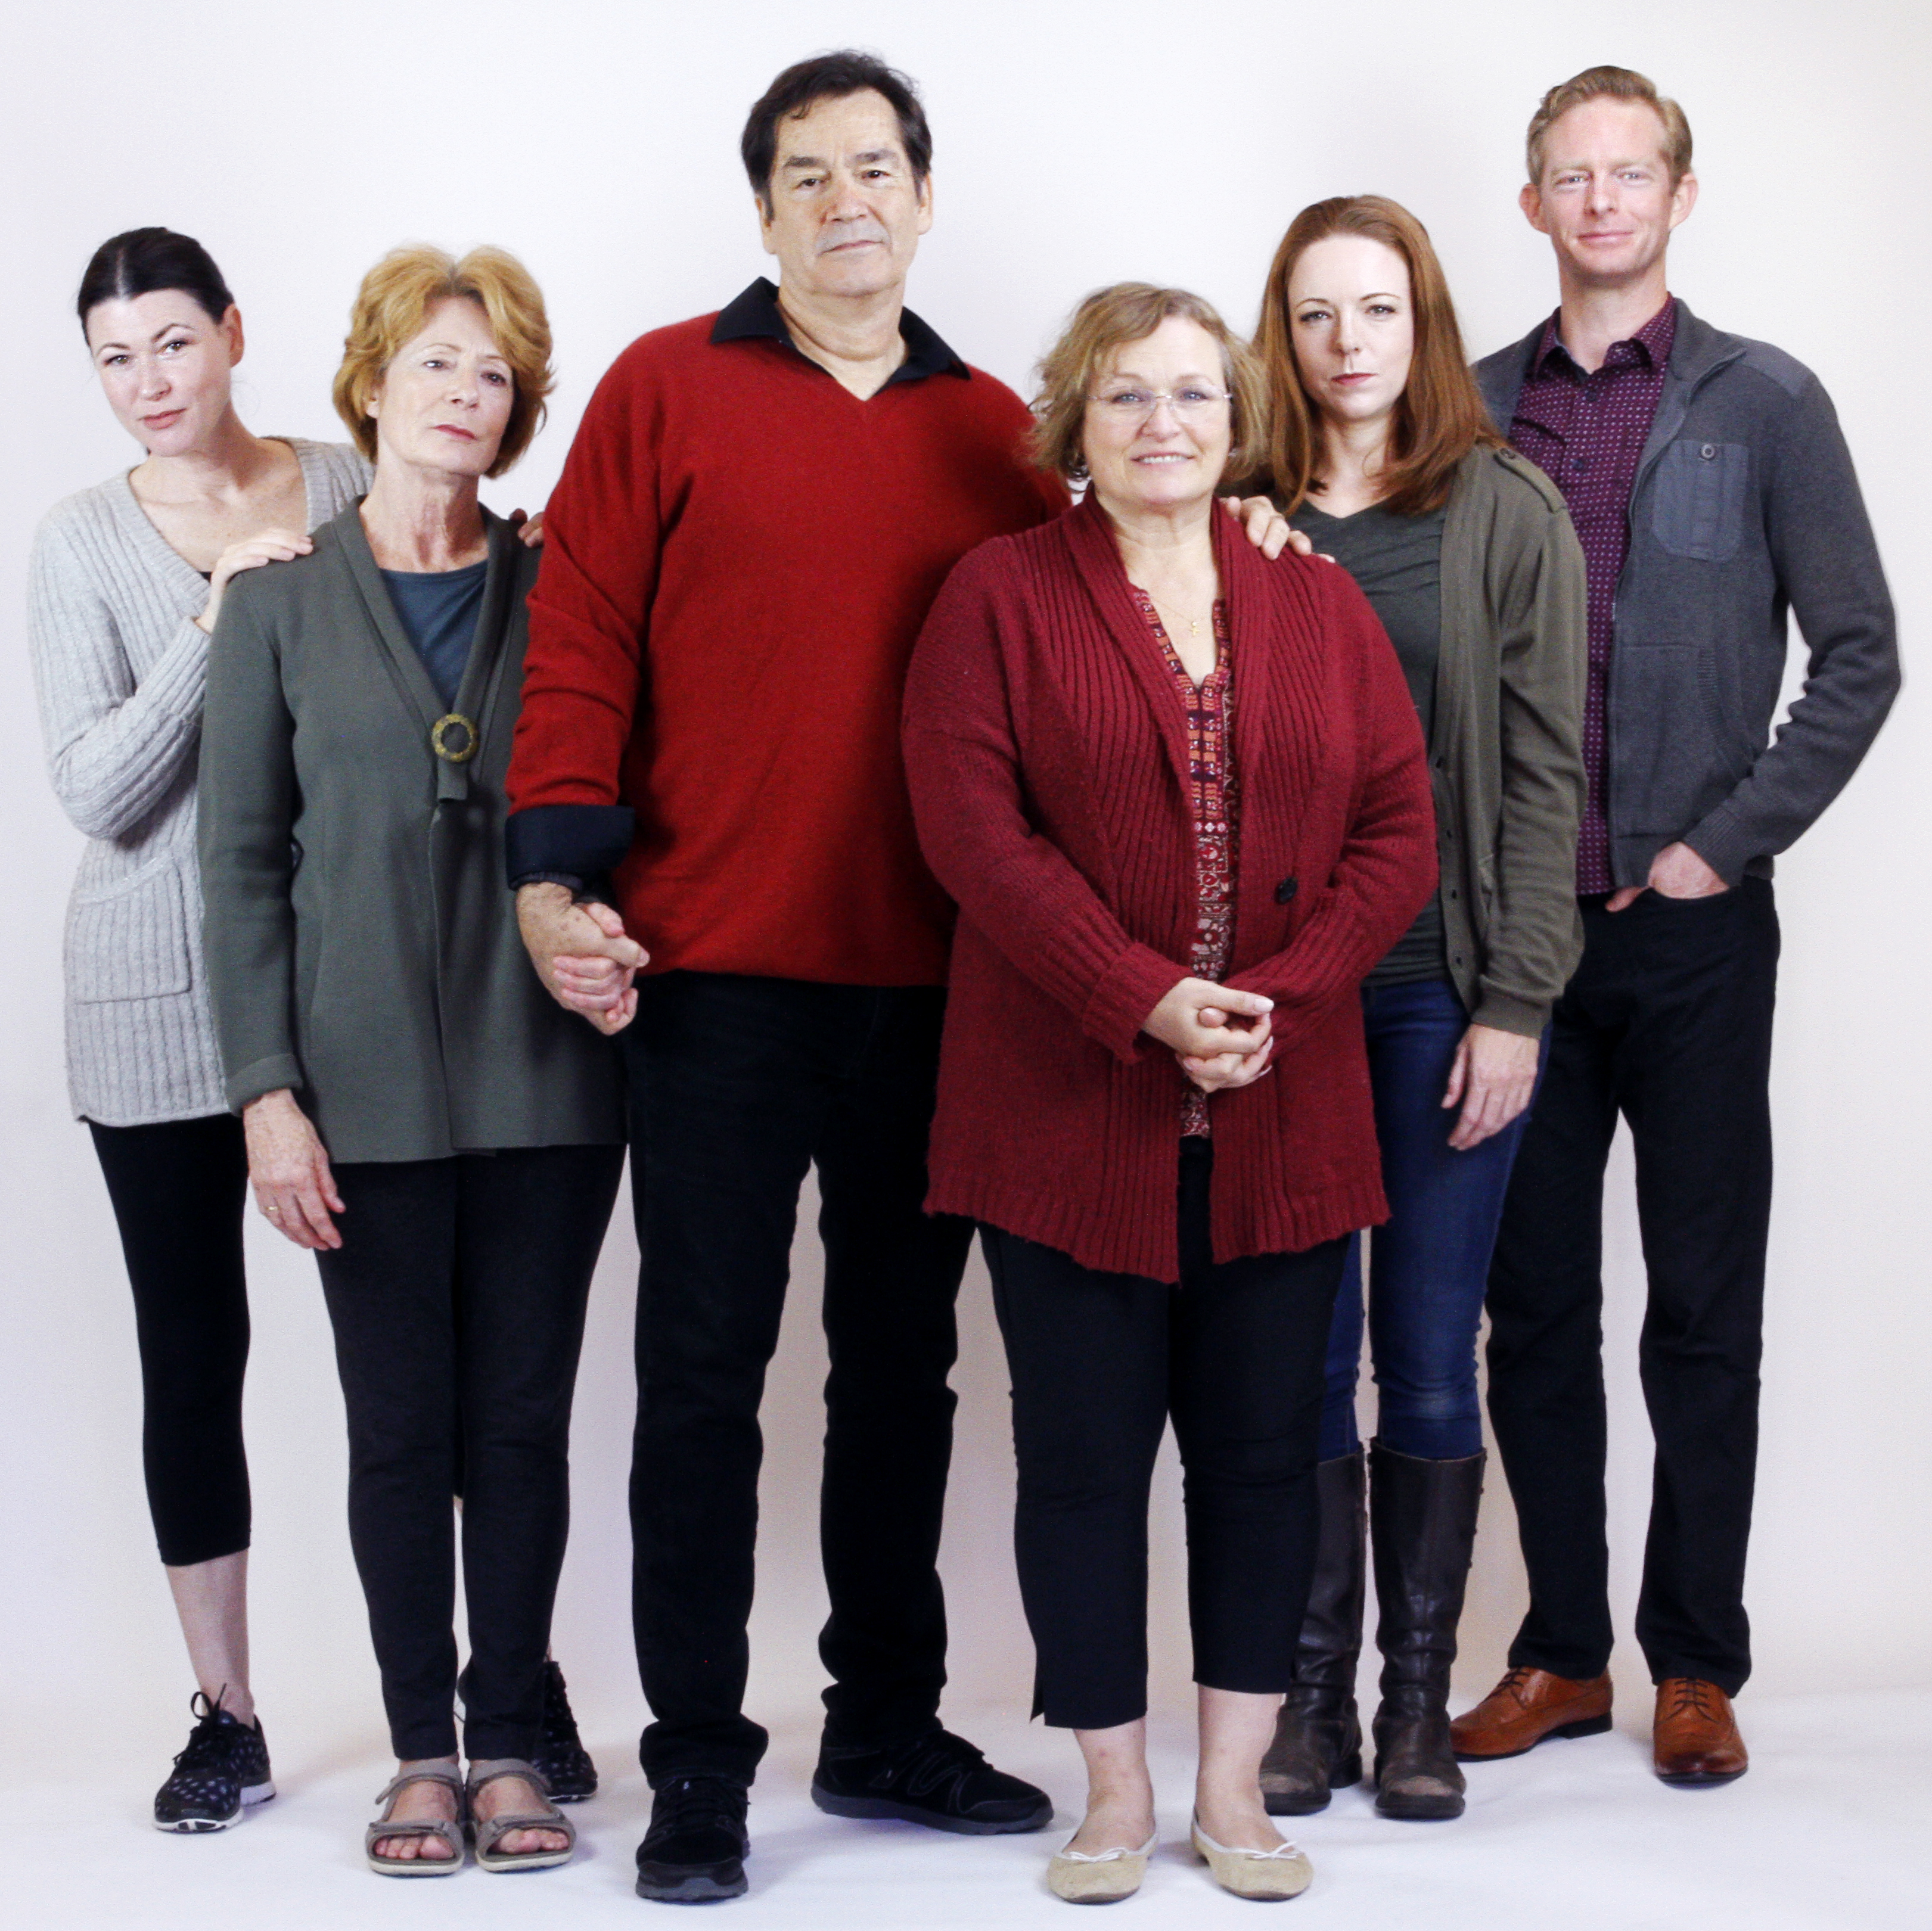 The Humans Cast 3